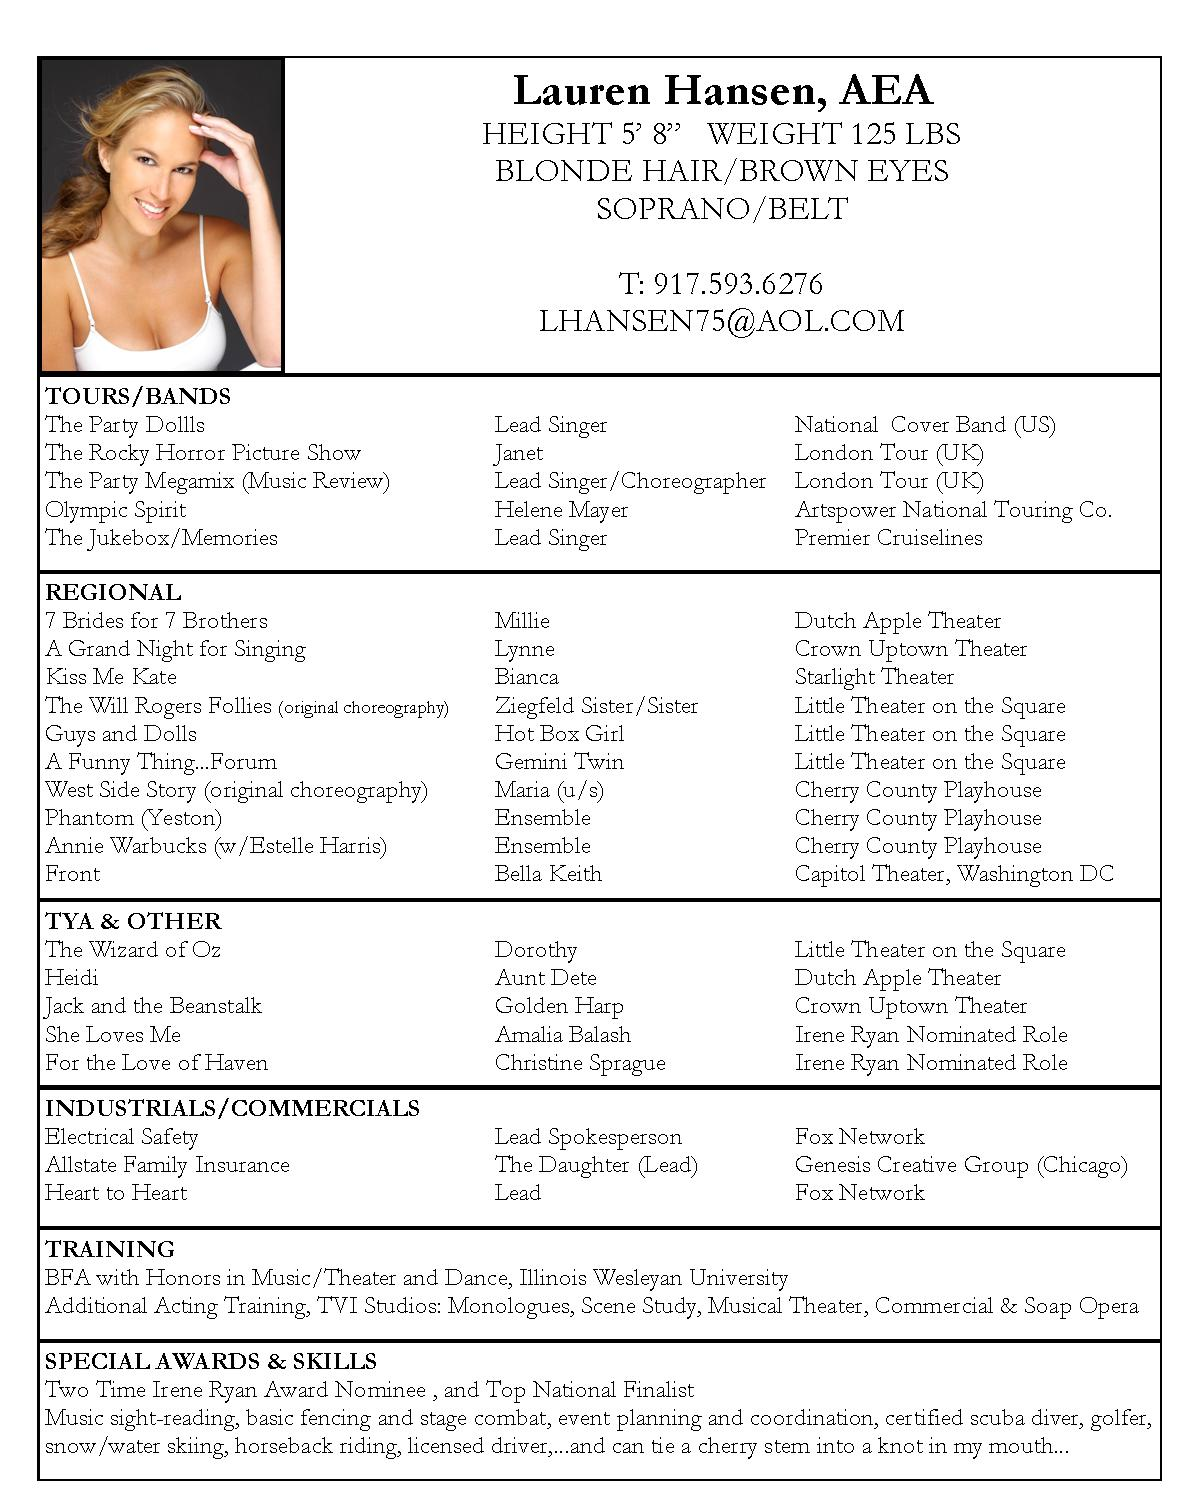 Opposenewapstandardsus  Sweet Resume For Actors Resume For Acting Actors Acting Resume Template  With Remarkable Acting Cv  Beginner Acting Resume Example For Inexperienced  With Enchanting Intership Resume Also Work Resume Sample In Addition New Grad Nursing Resume Template And Central Resume Processing Center As Well As Plain Text Resume Template Additionally Resume In Microsoft Word From Kelseymarieco With Opposenewapstandardsus  Remarkable Resume For Actors Resume For Acting Actors Acting Resume Template  With Enchanting Acting Cv  Beginner Acting Resume Example For Inexperienced  And Sweet Intership Resume Also Work Resume Sample In Addition New Grad Nursing Resume Template From Kelseymarieco